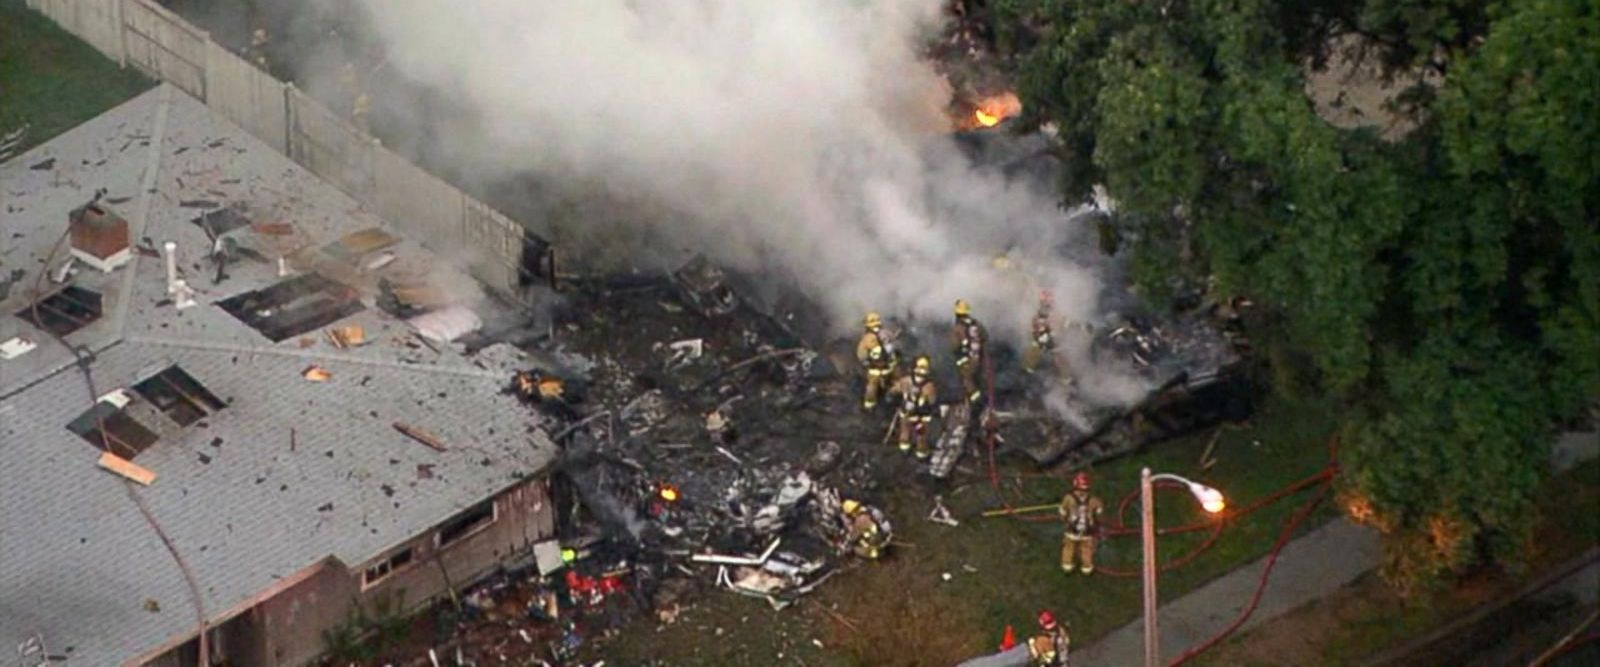 VIDEO: At least 3 killed after small plane slams into homes